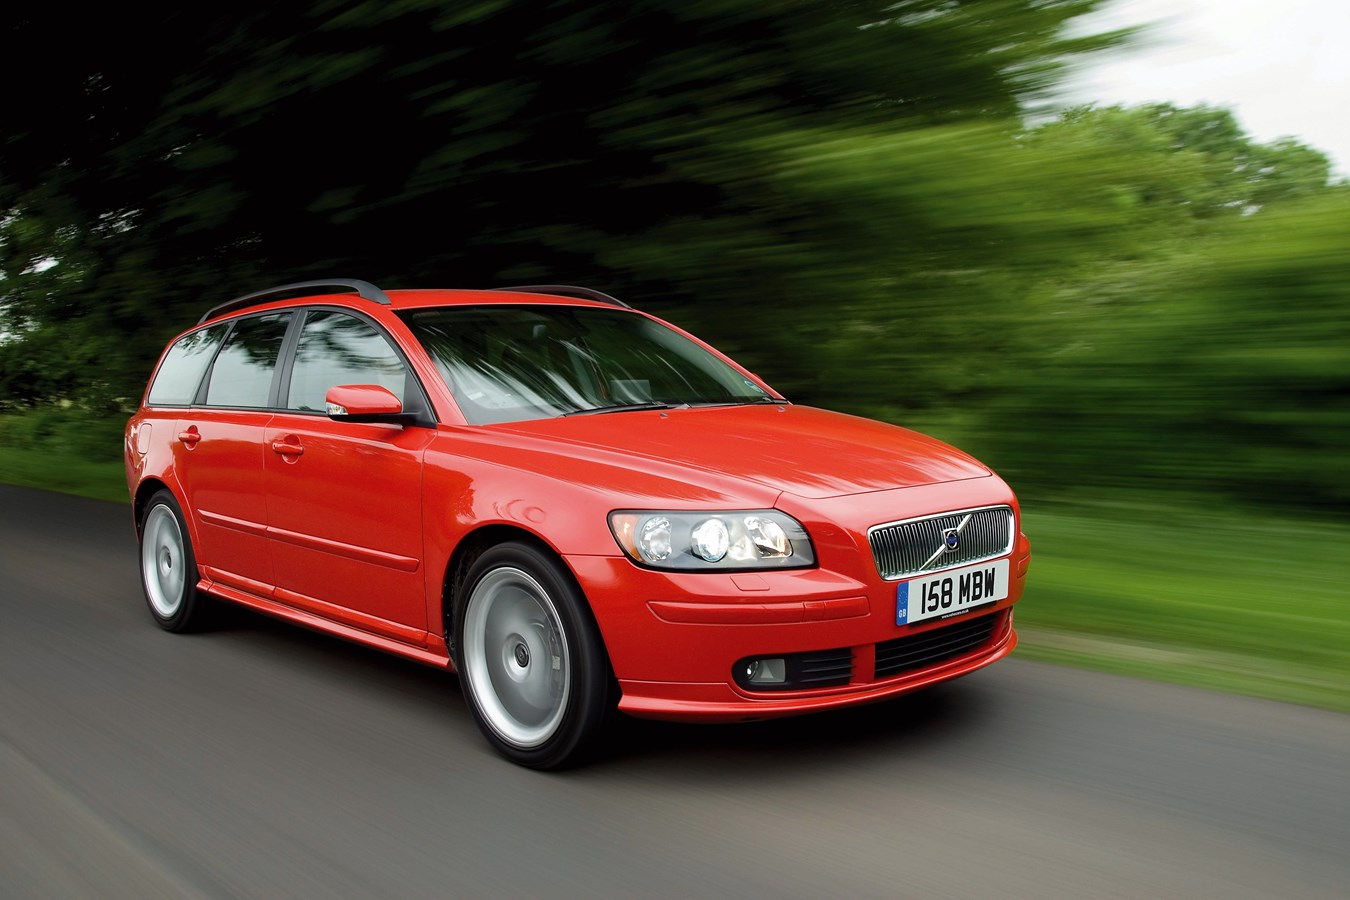 TRIPLE HONOURS FOR VOLVO USED CARS AND GREAT NEWS FOR BUYERS ON A BUDGET